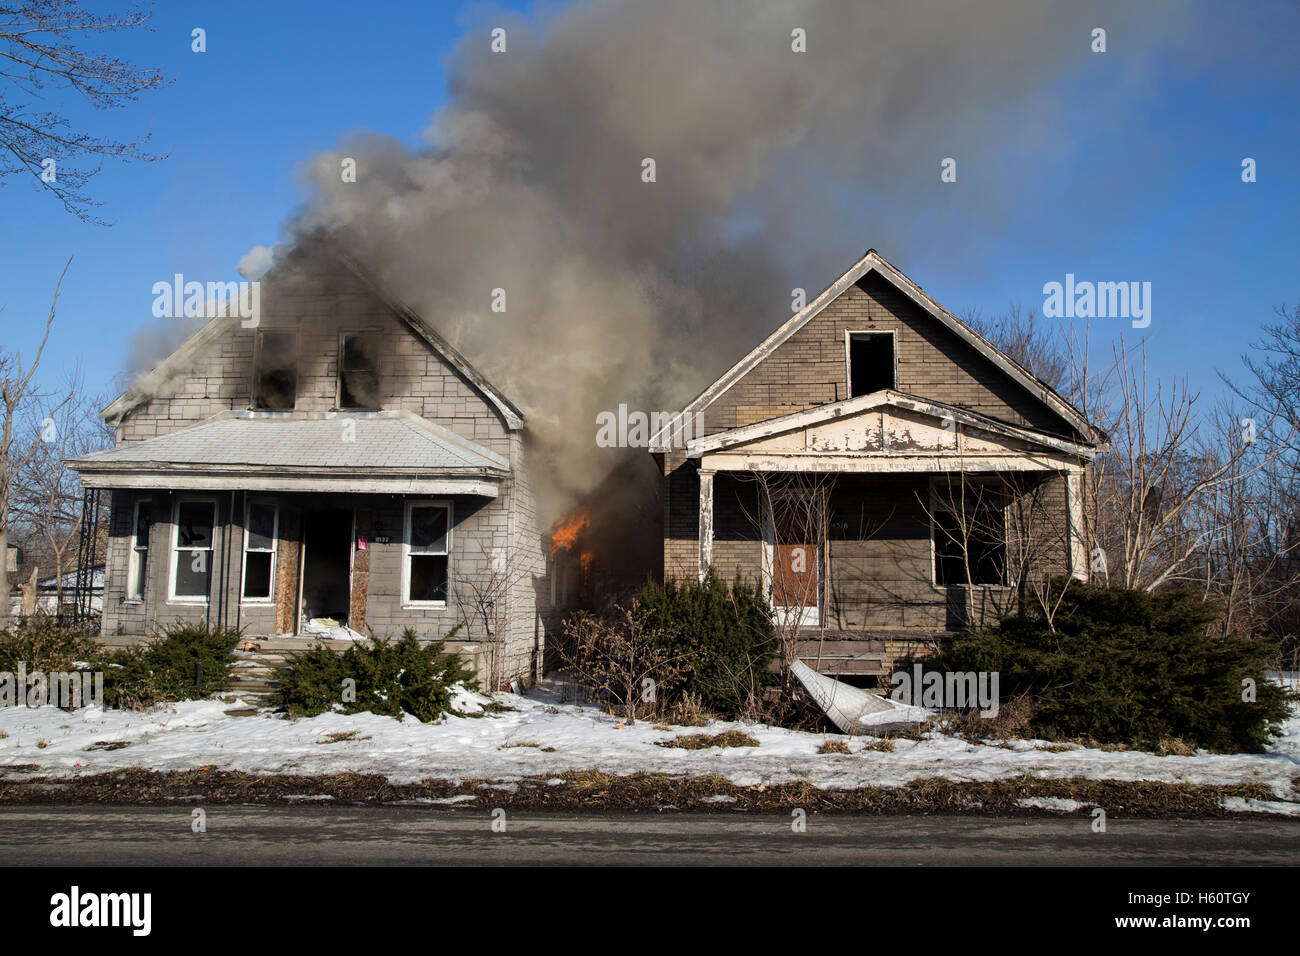 Remarkable C8 Alamy Com Comp H60Tgy Two Vacant Houses Burning Download Free Architecture Designs Licukmadebymaigaardcom